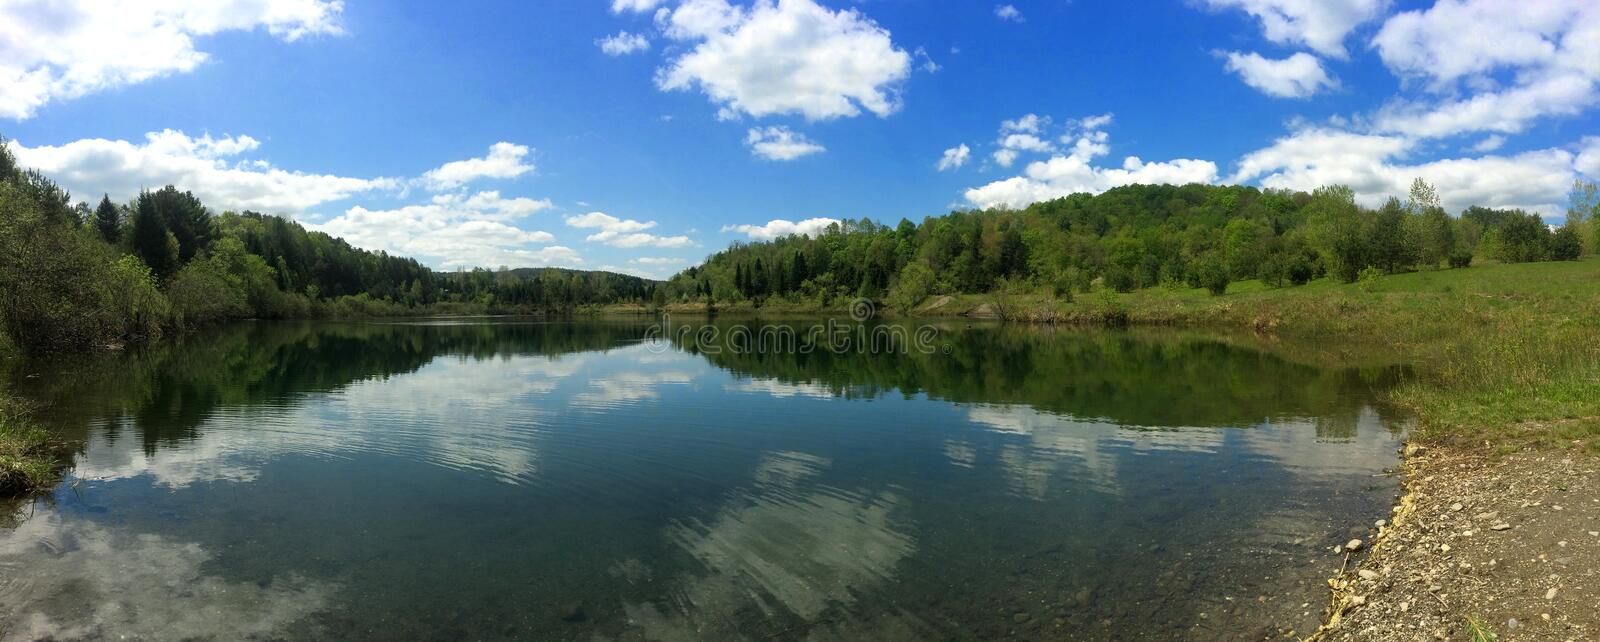 Panoramic of a Crystal Spring Fed Pond royalty free stock photo